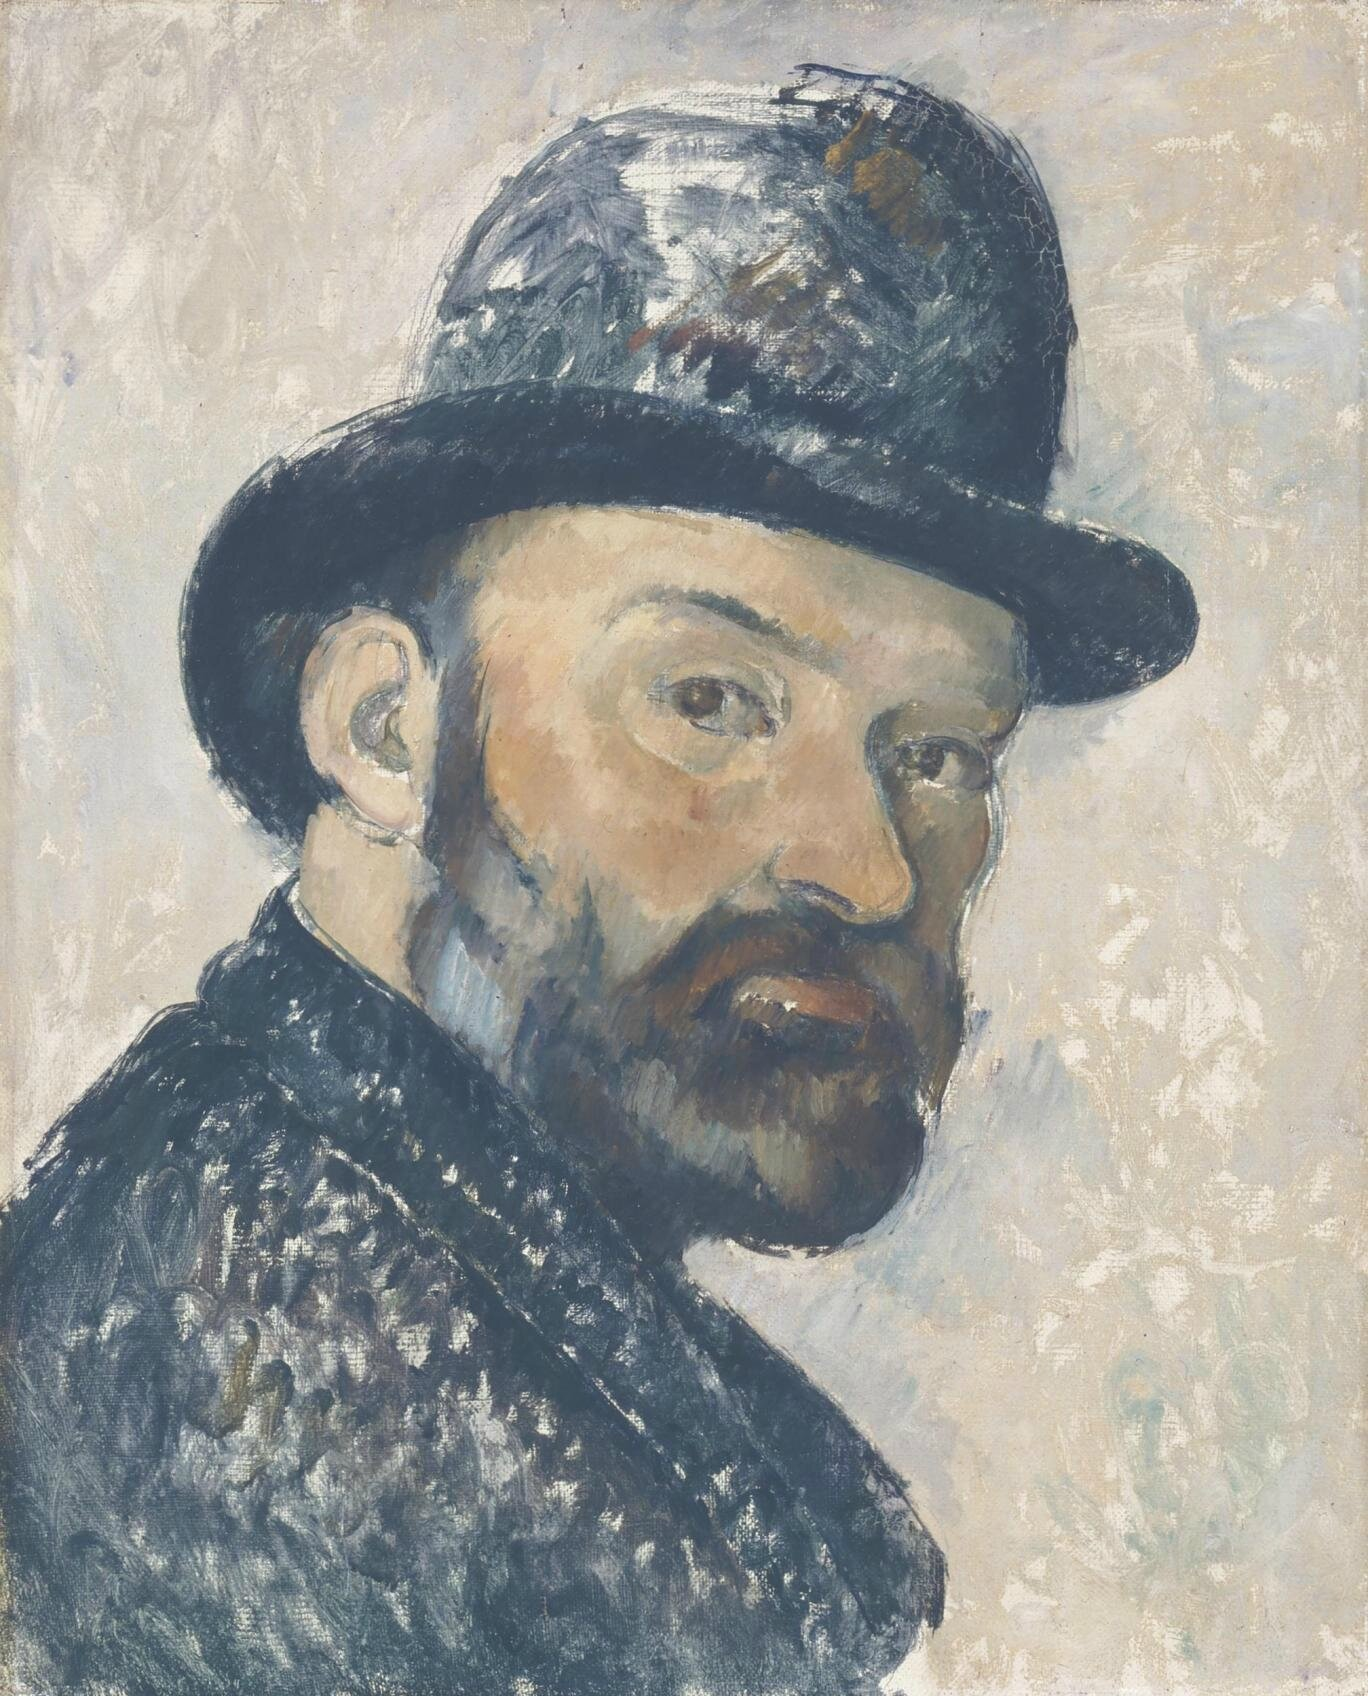 Self portraits by Cézanne go on public display for the first time in the UK